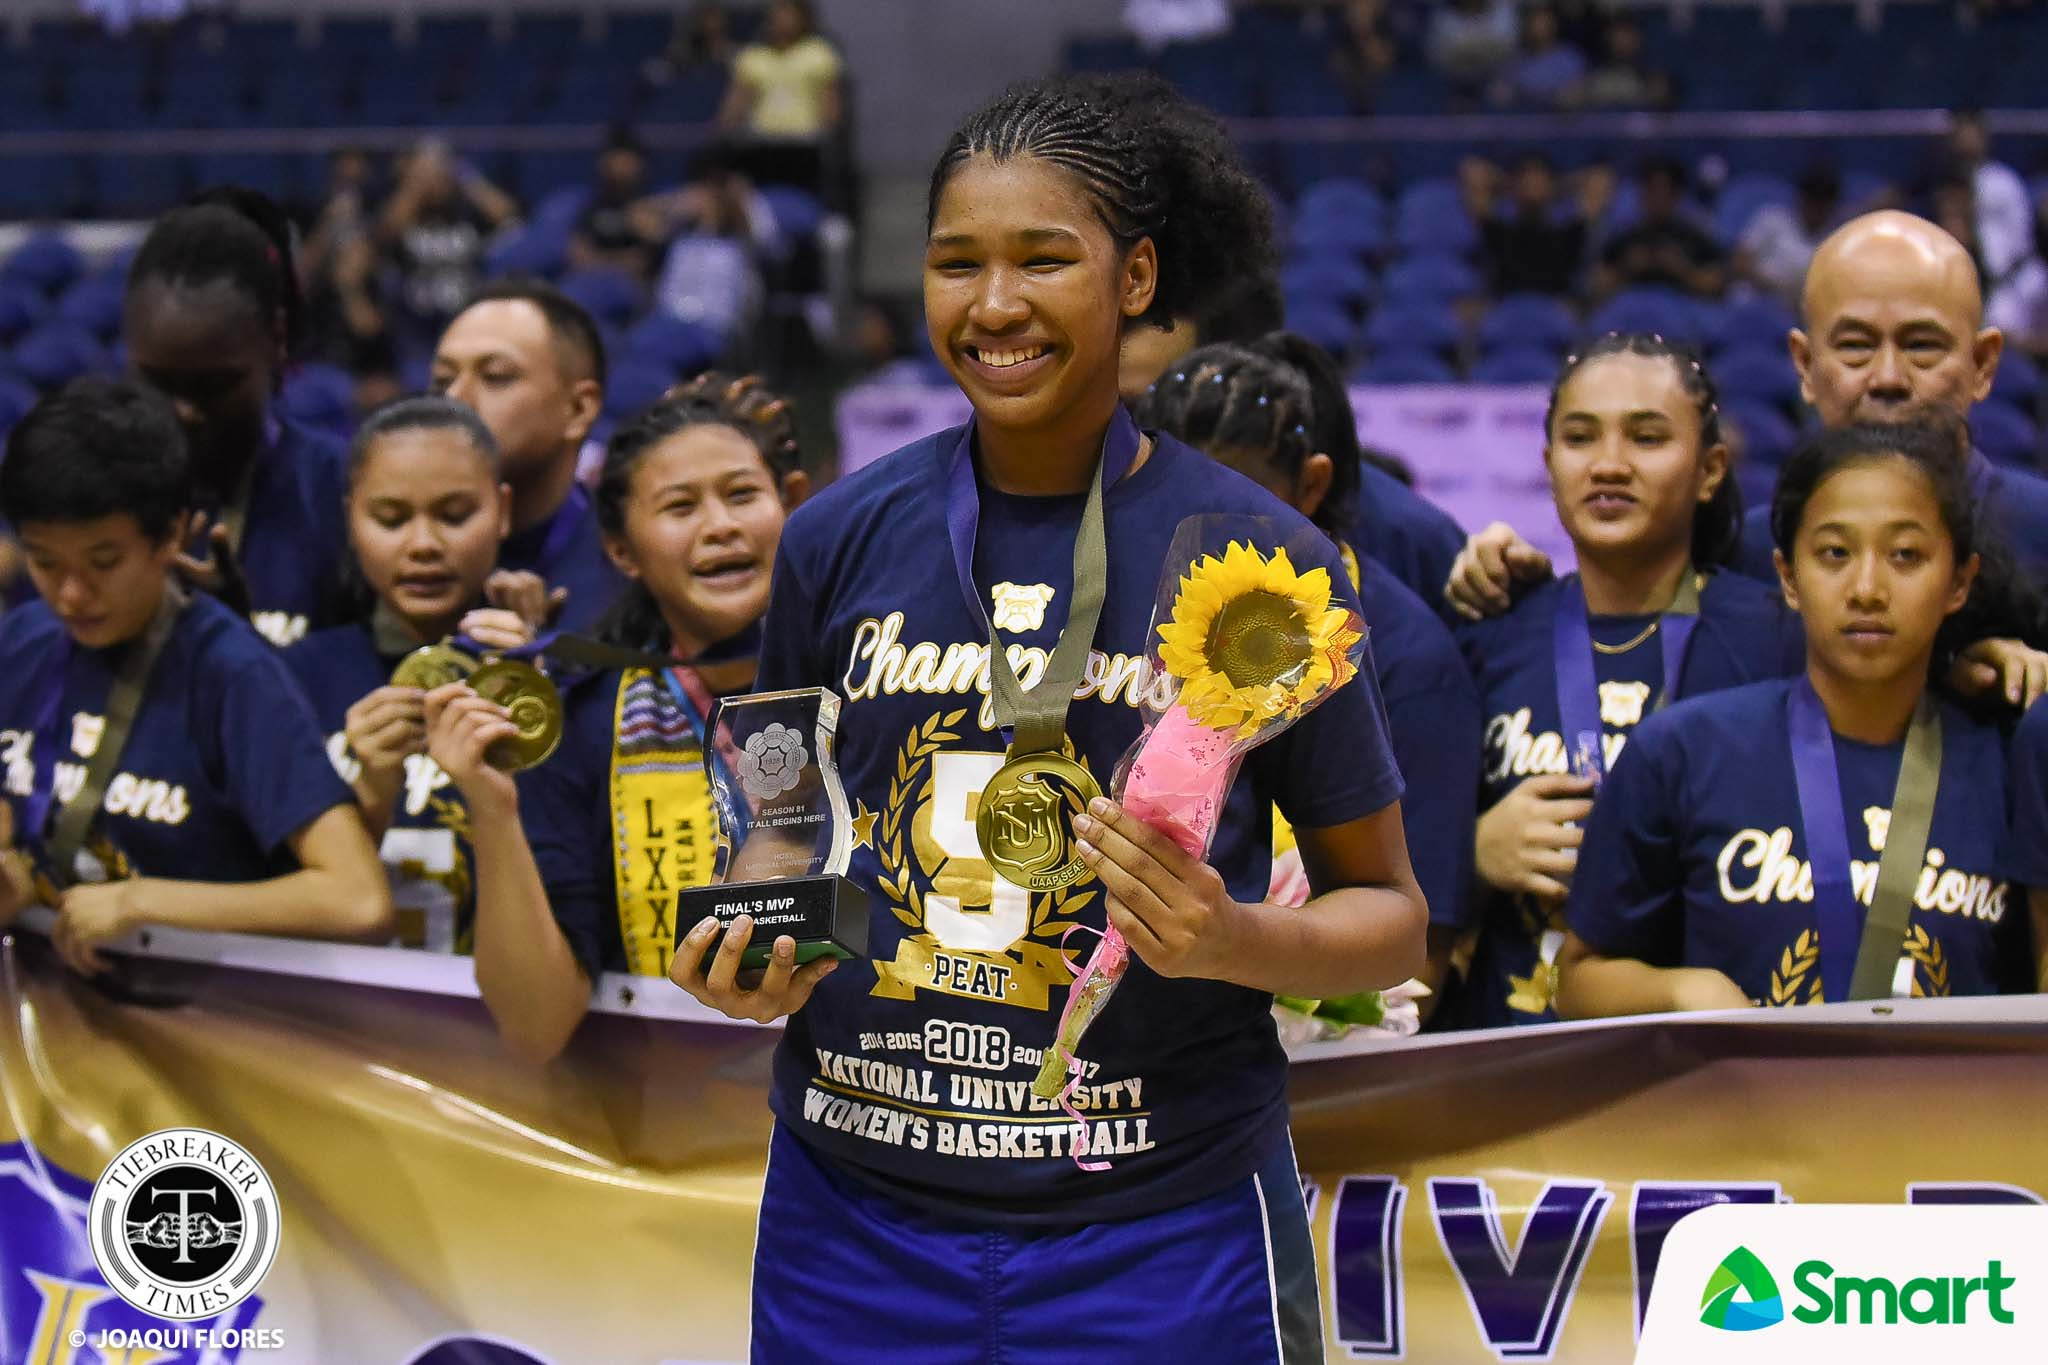 Tiebreaker Times Jack Animam gets last laugh after copping Finals MVP plum Basketball News NU UAAP  UAAP Season 81 Women's Basketball UAAP Season 81 NU Women's Basketball Jack Animam